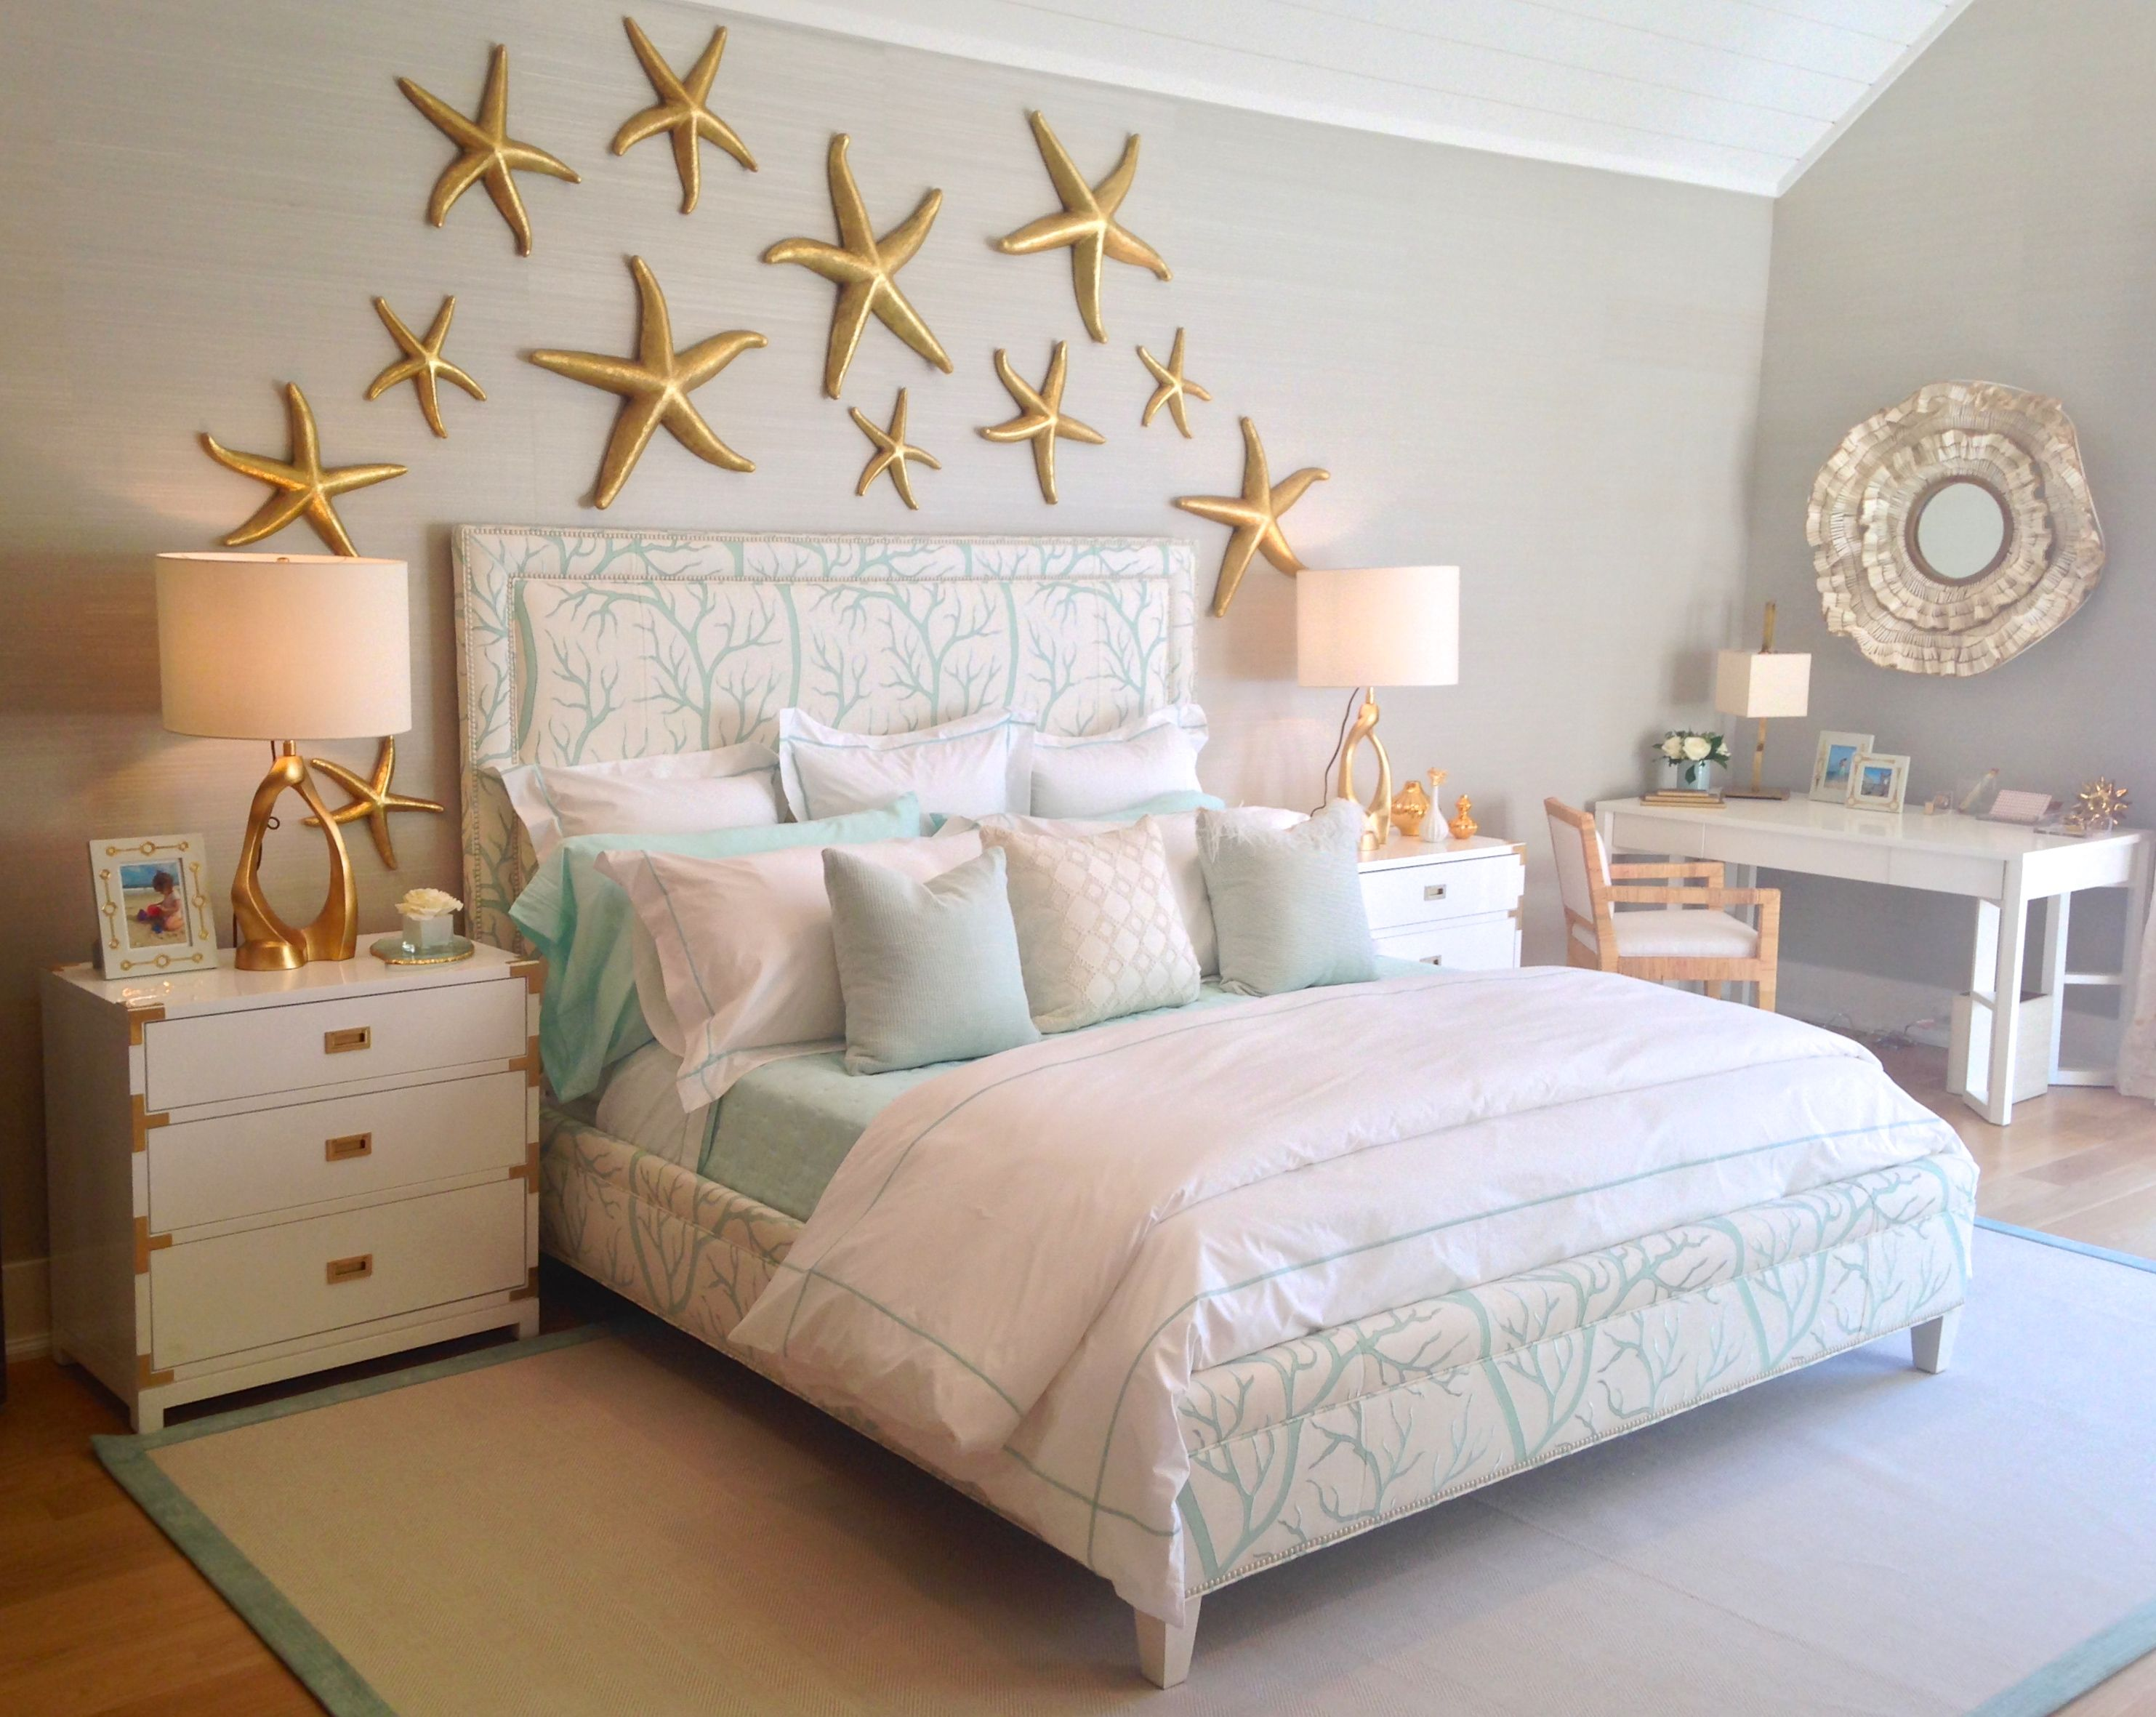 Bedroom Decorating Themes best 25+ mermaid bedroom ideas on pinterest | mermaid room